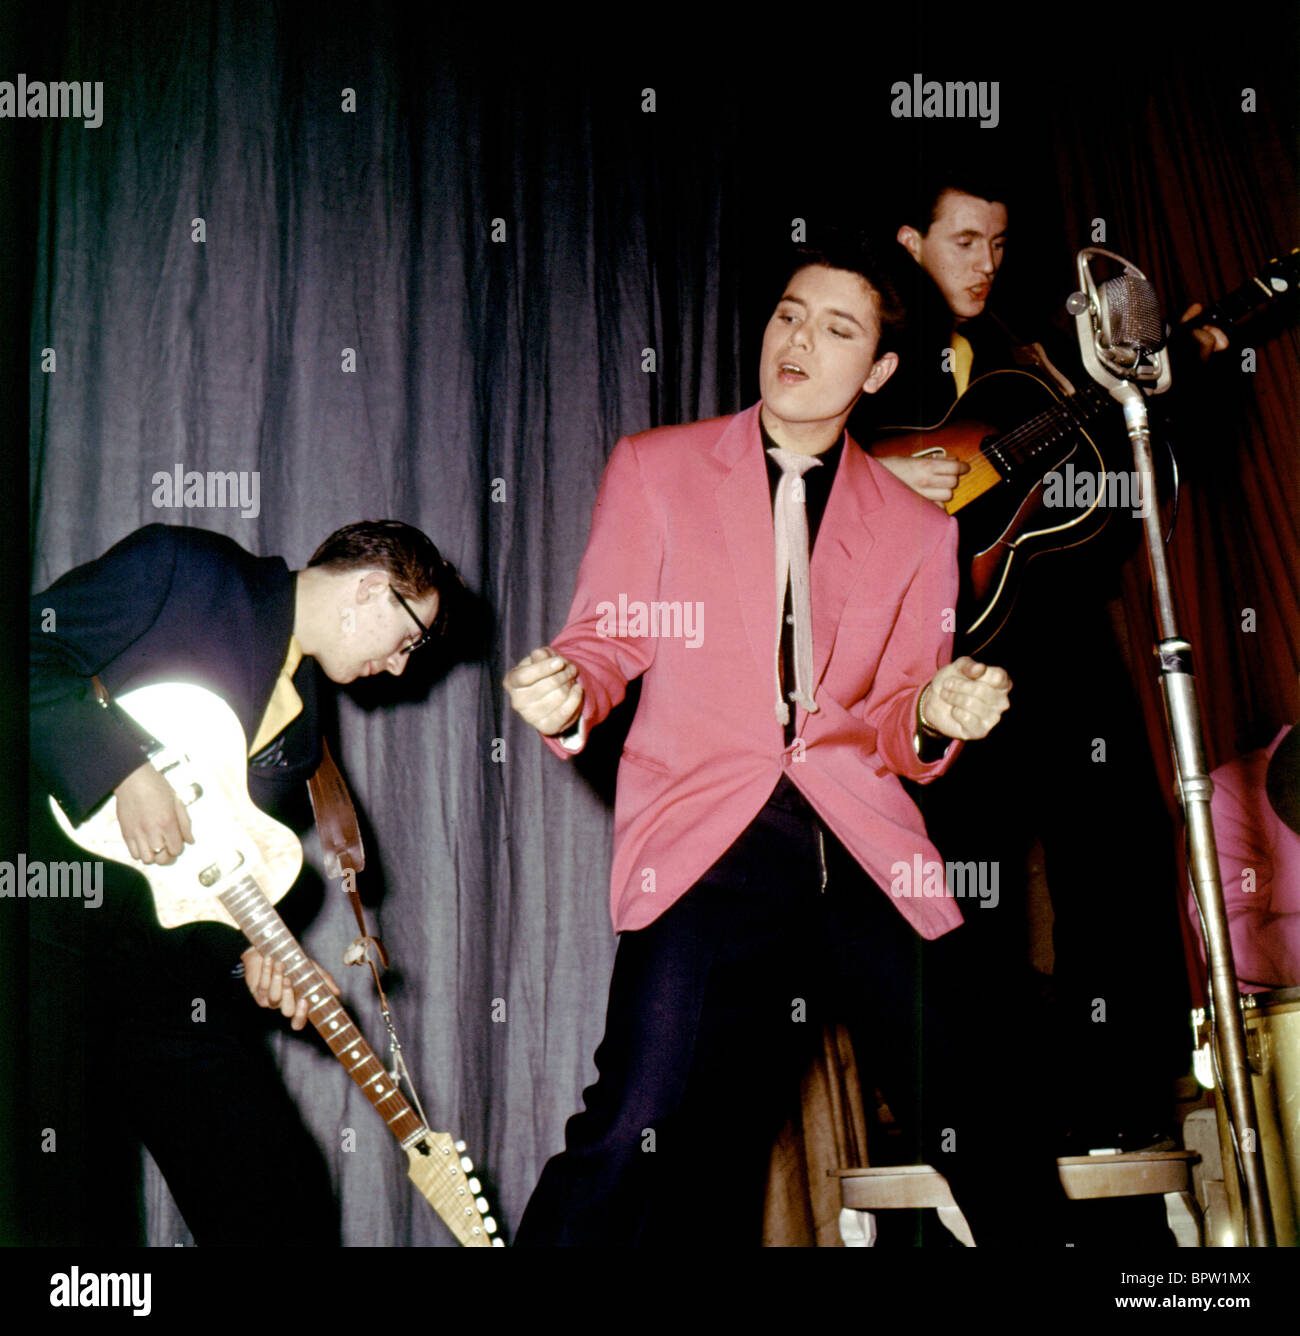 Bruce Welch: HANK MARVIN CLIFF RICHARD & BRUCE WELCH CLIFF RICHARD AND